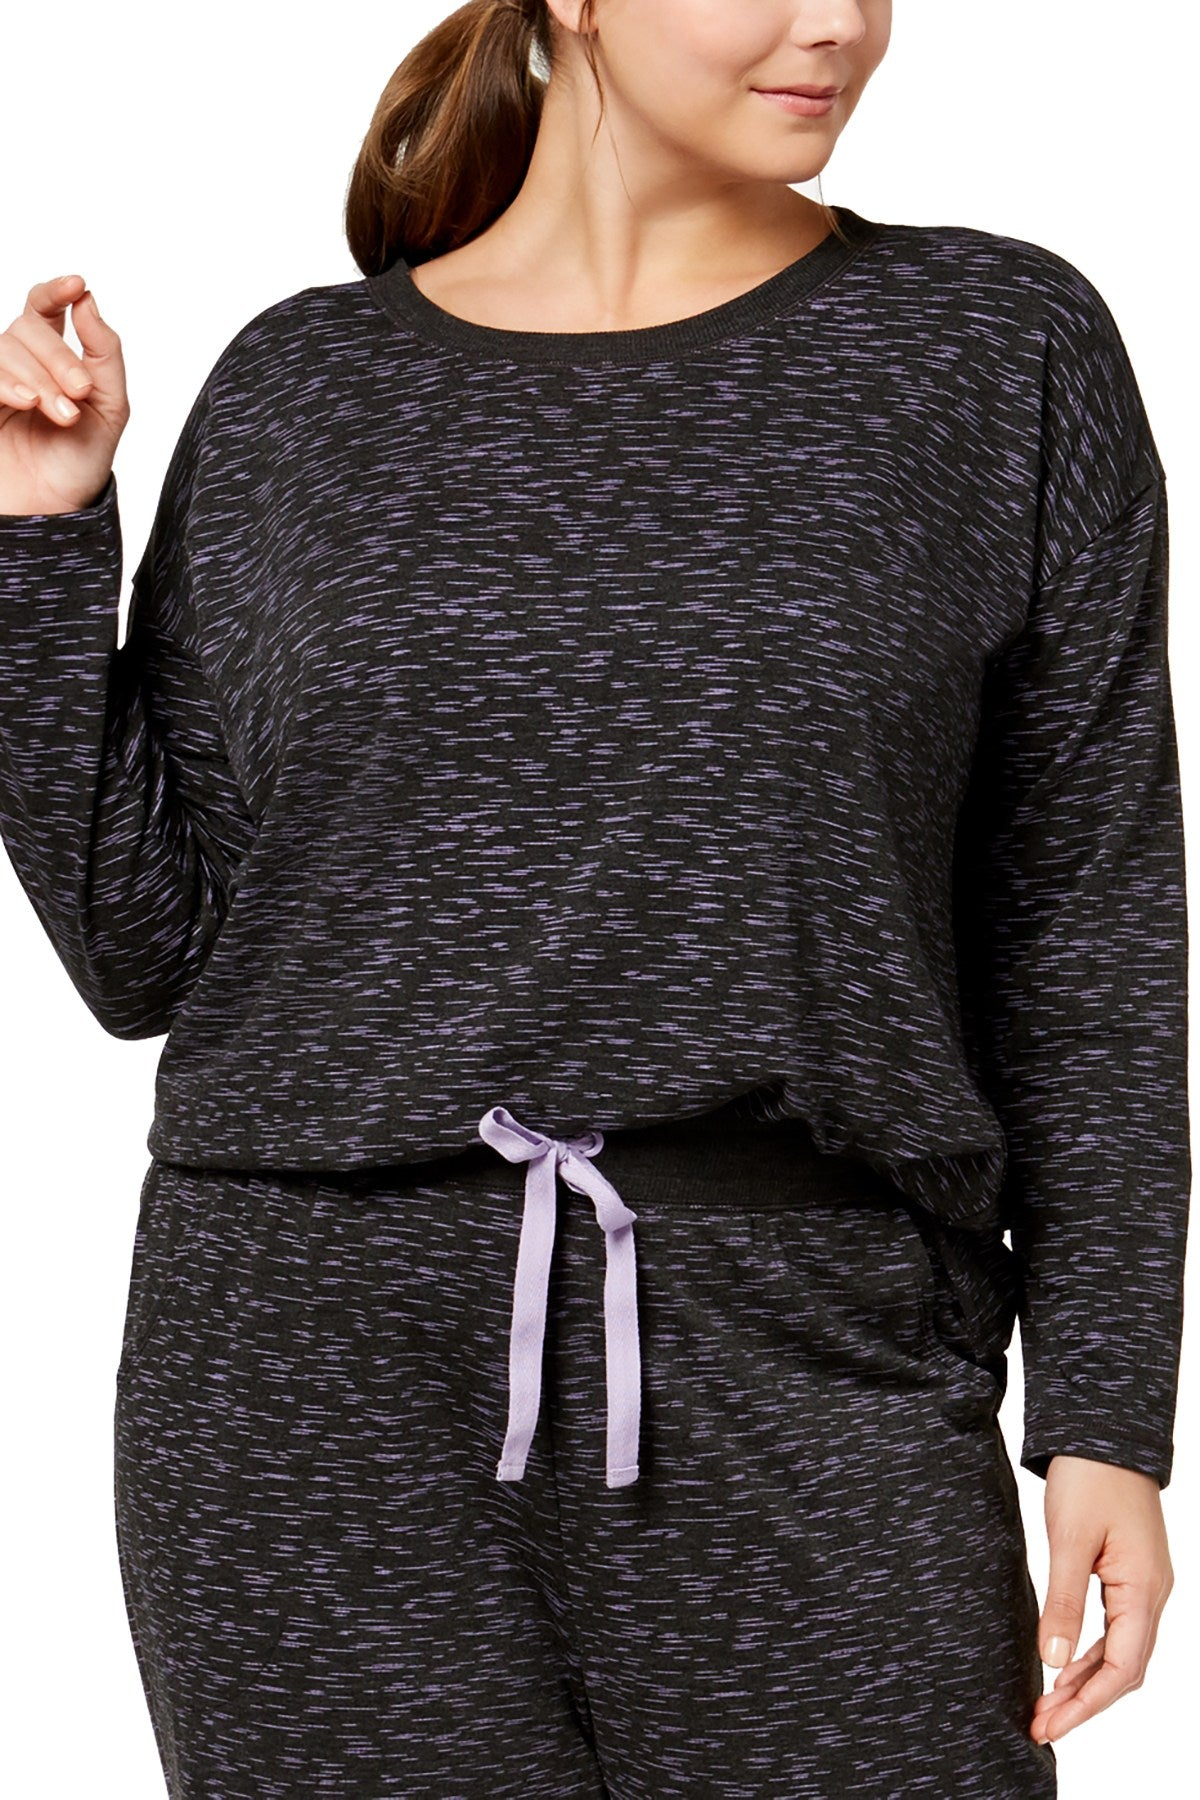 Jenni PLUS Printed Lounge Top in Charcoal/Purple Space-Dye